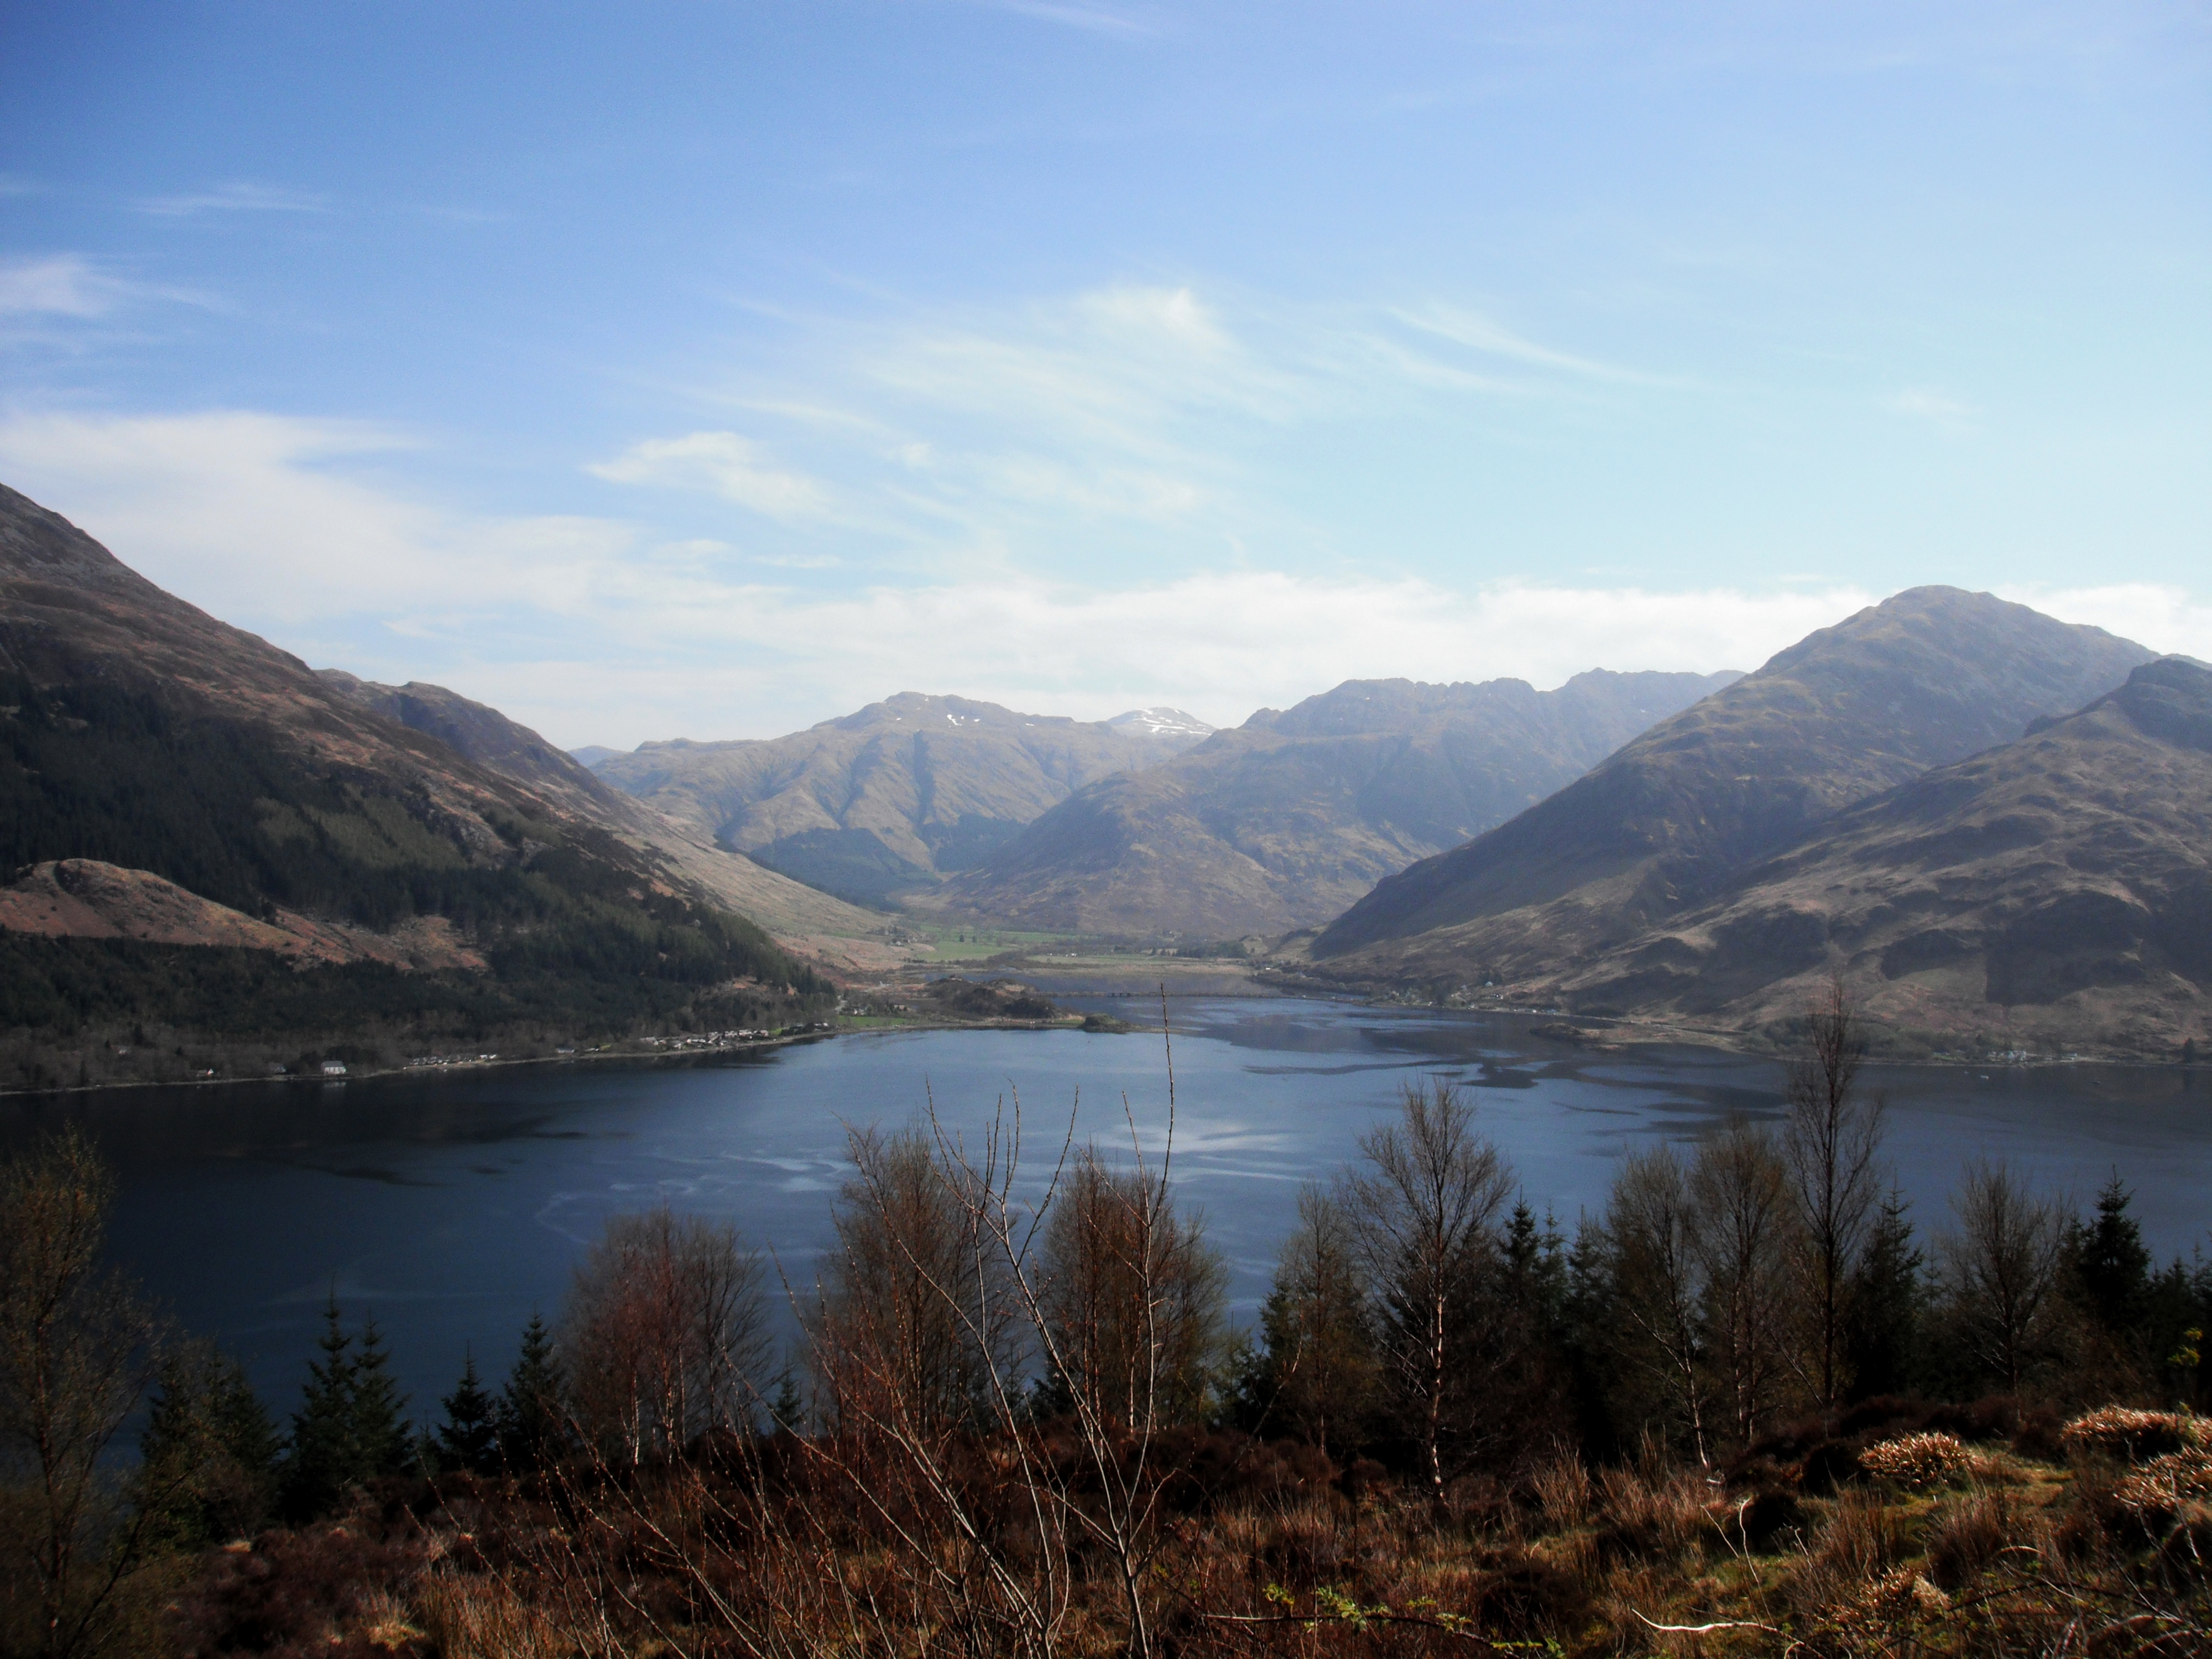 Mountains of Kintail at the head of Loch Duich in the Scottish Highlands Photo: Denise Pallett